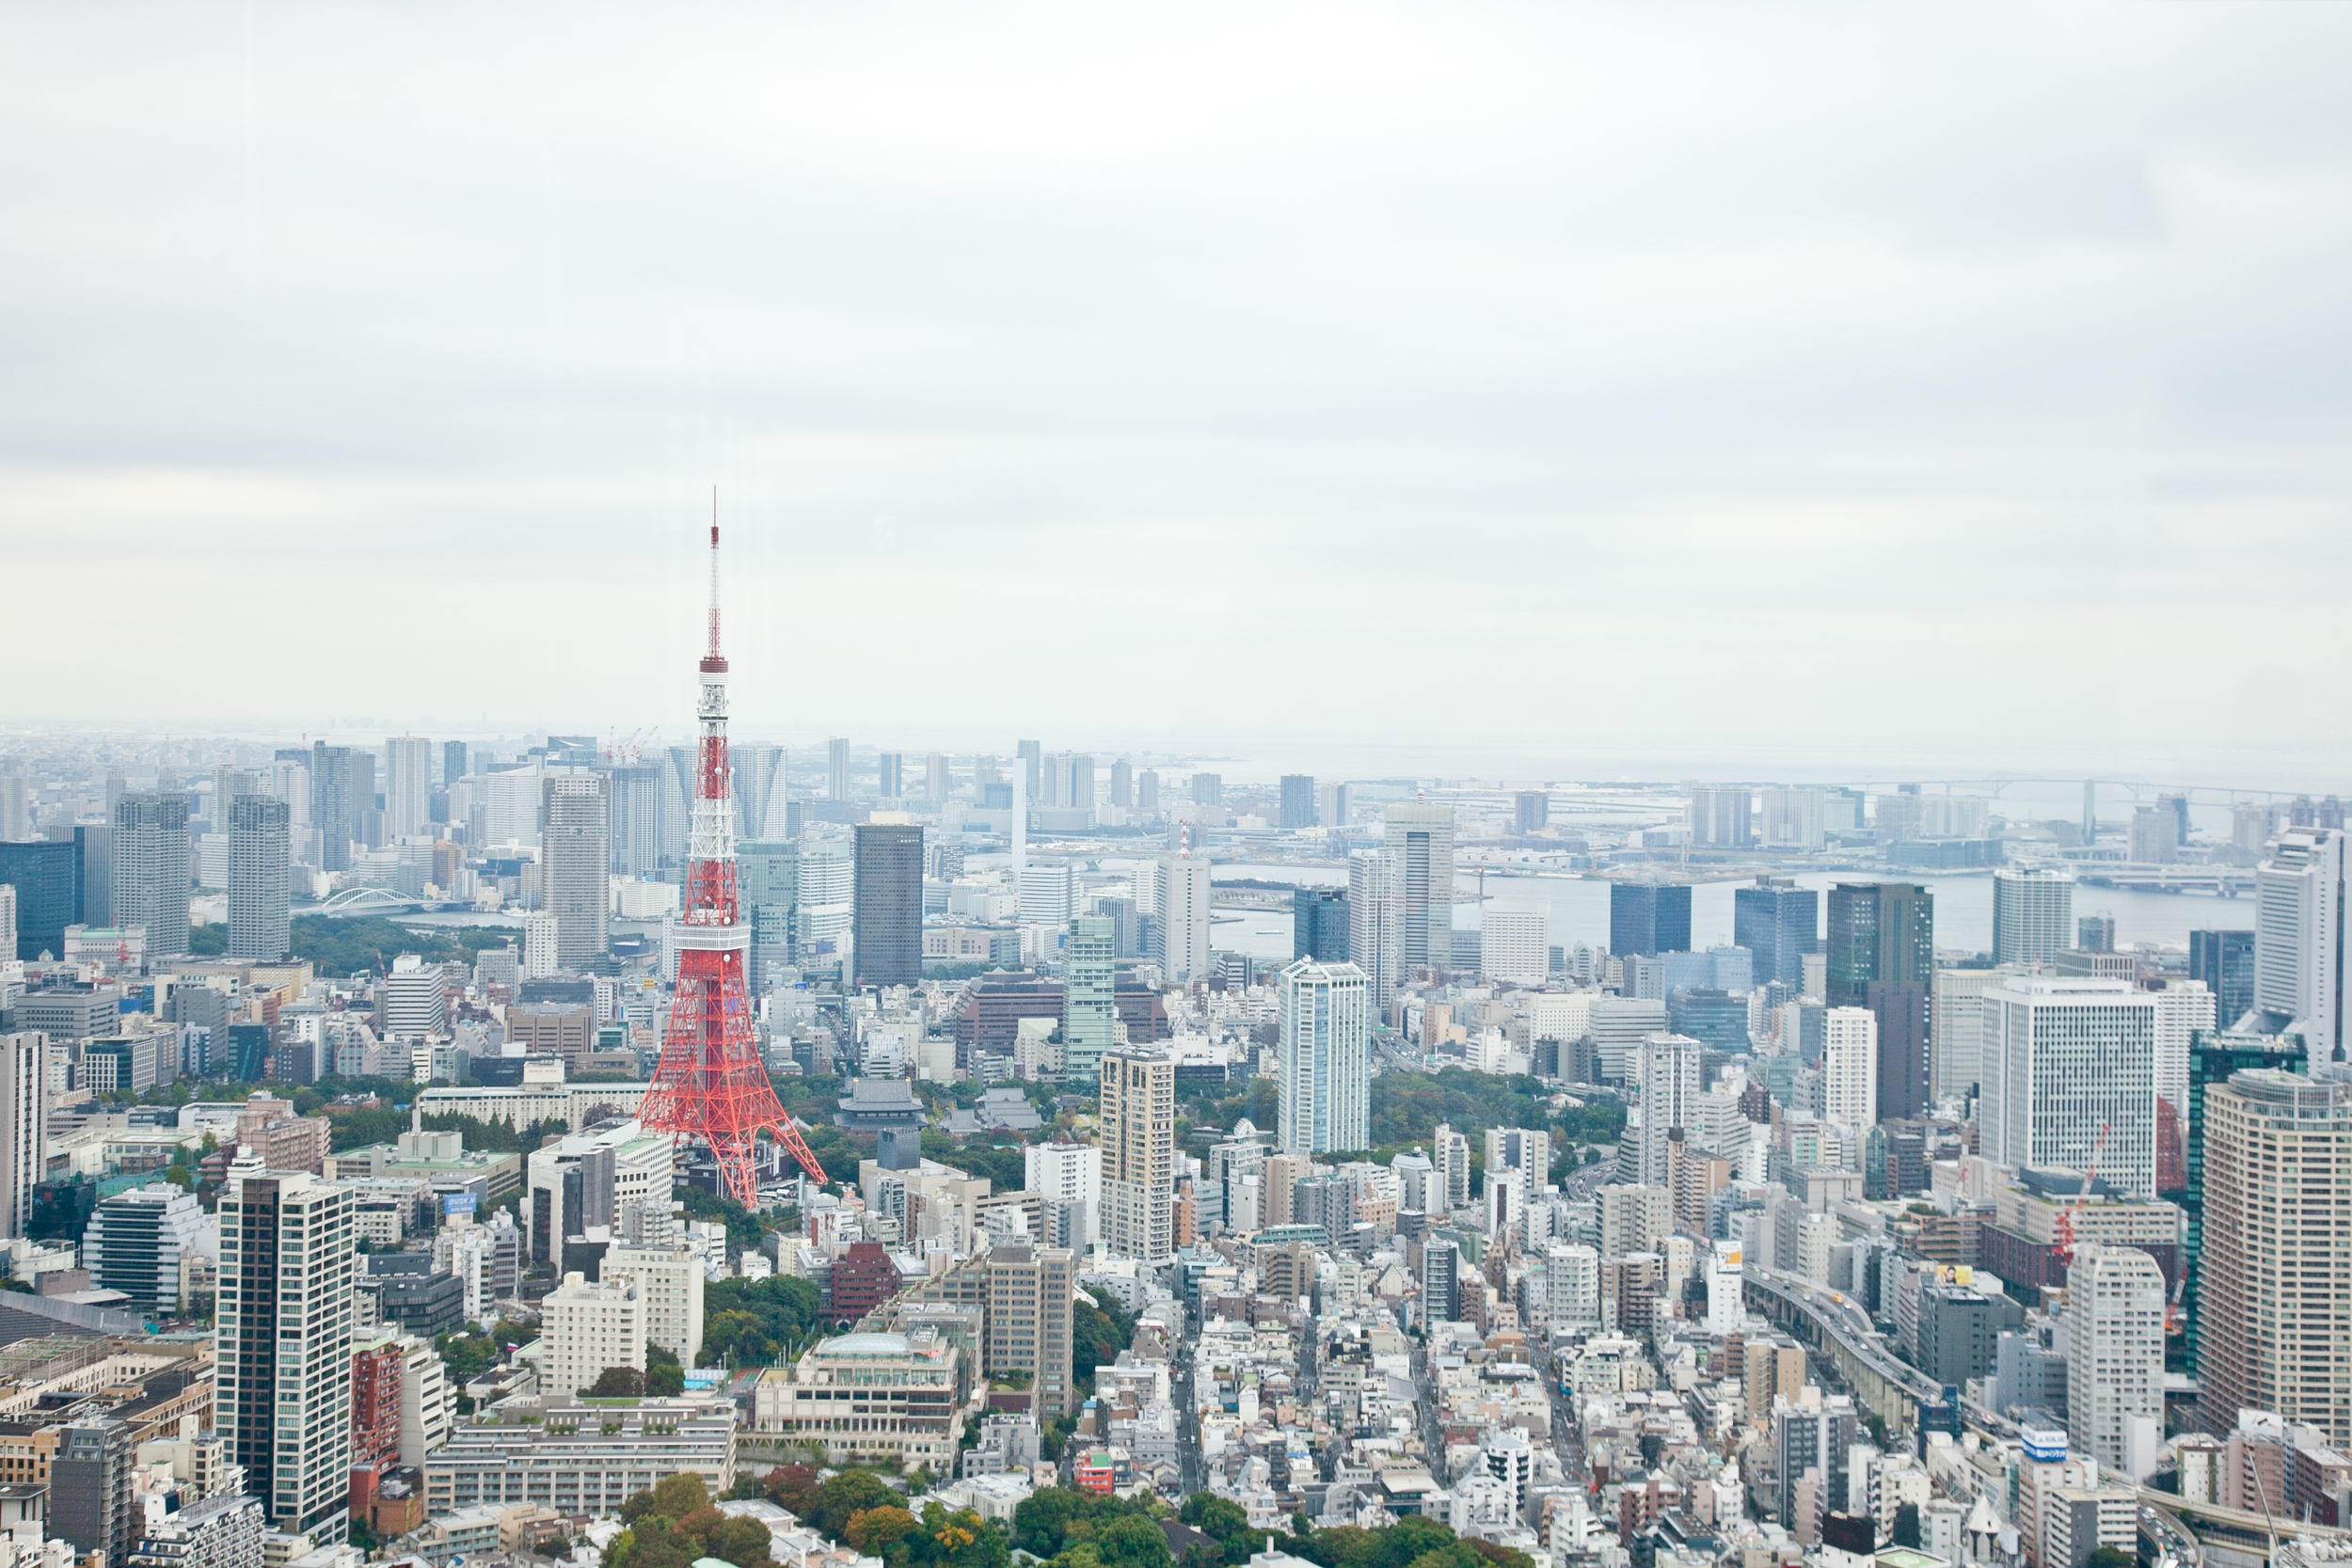 The view from the  Tokyo City View  observation deck in Mori Art Museum at Roppongi Hills